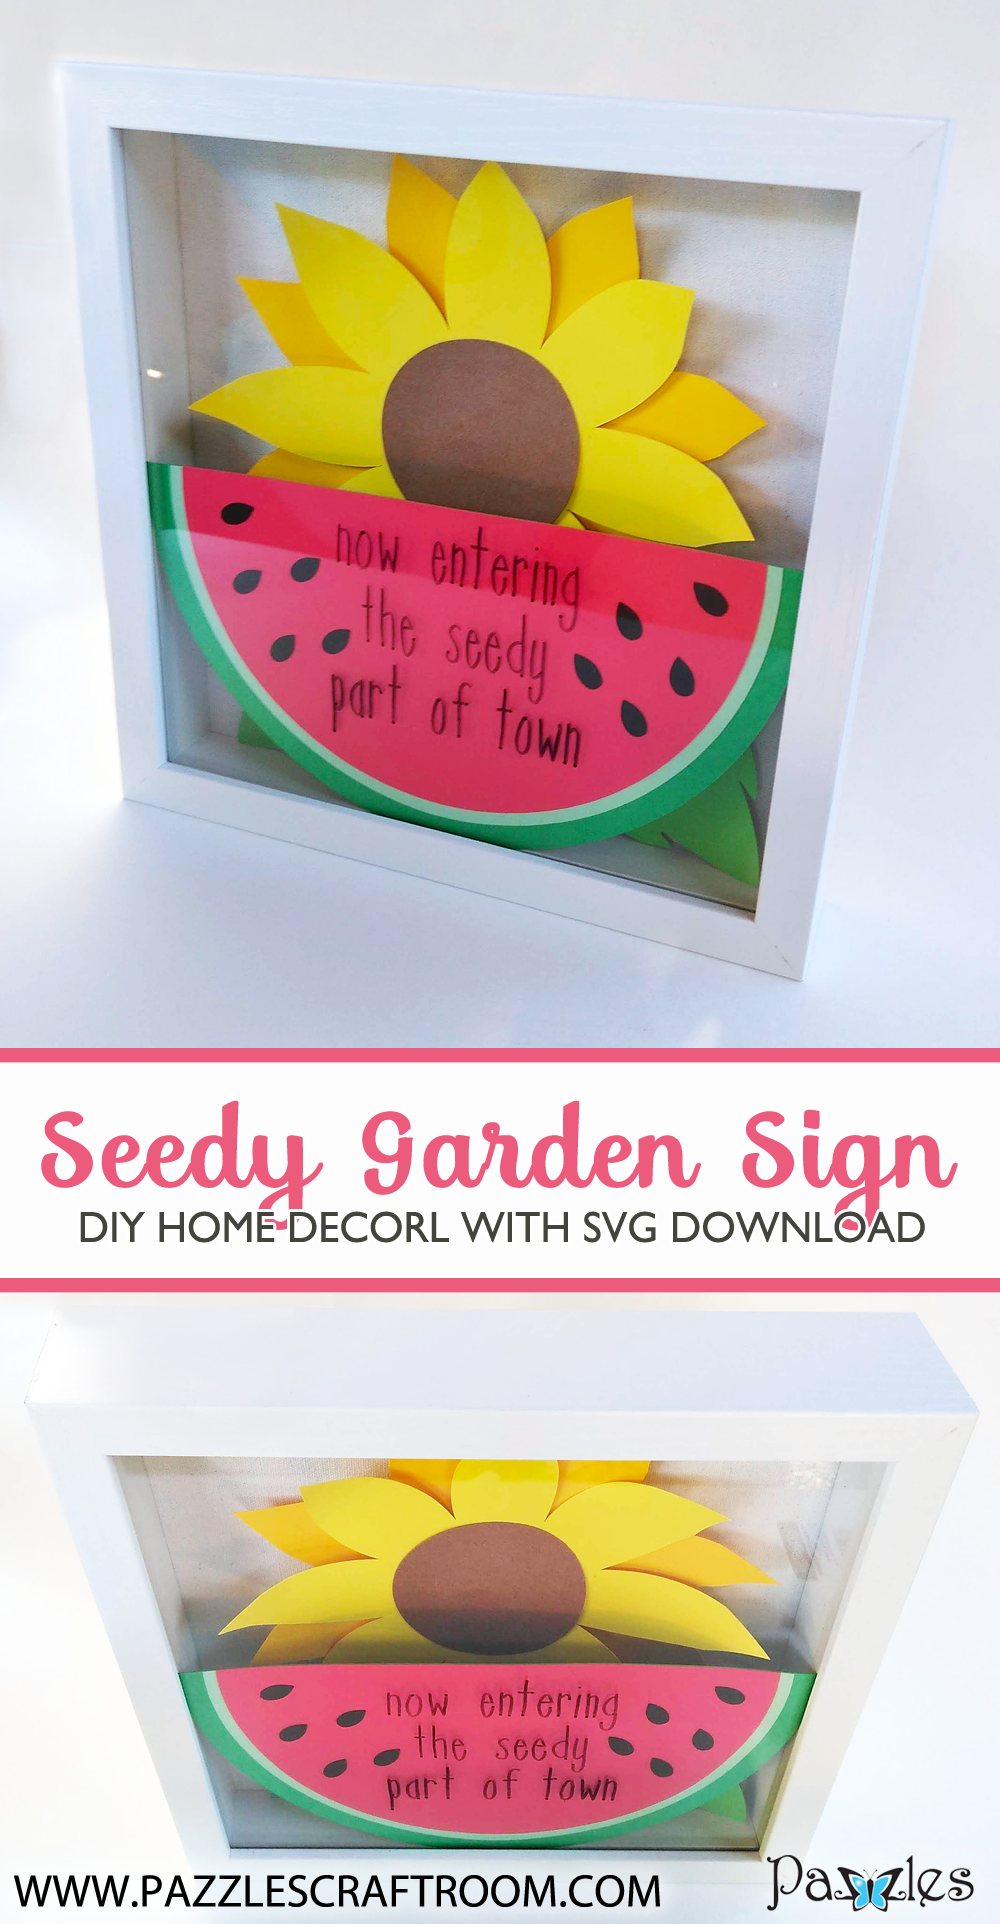 Pazzles DIY Seedy Garden Sign with instant SVG download. Compatible with all major electronic cutters including Pazzles Inspiration, Cricut, and Silhouette Cameo. Design by Renee Smart.